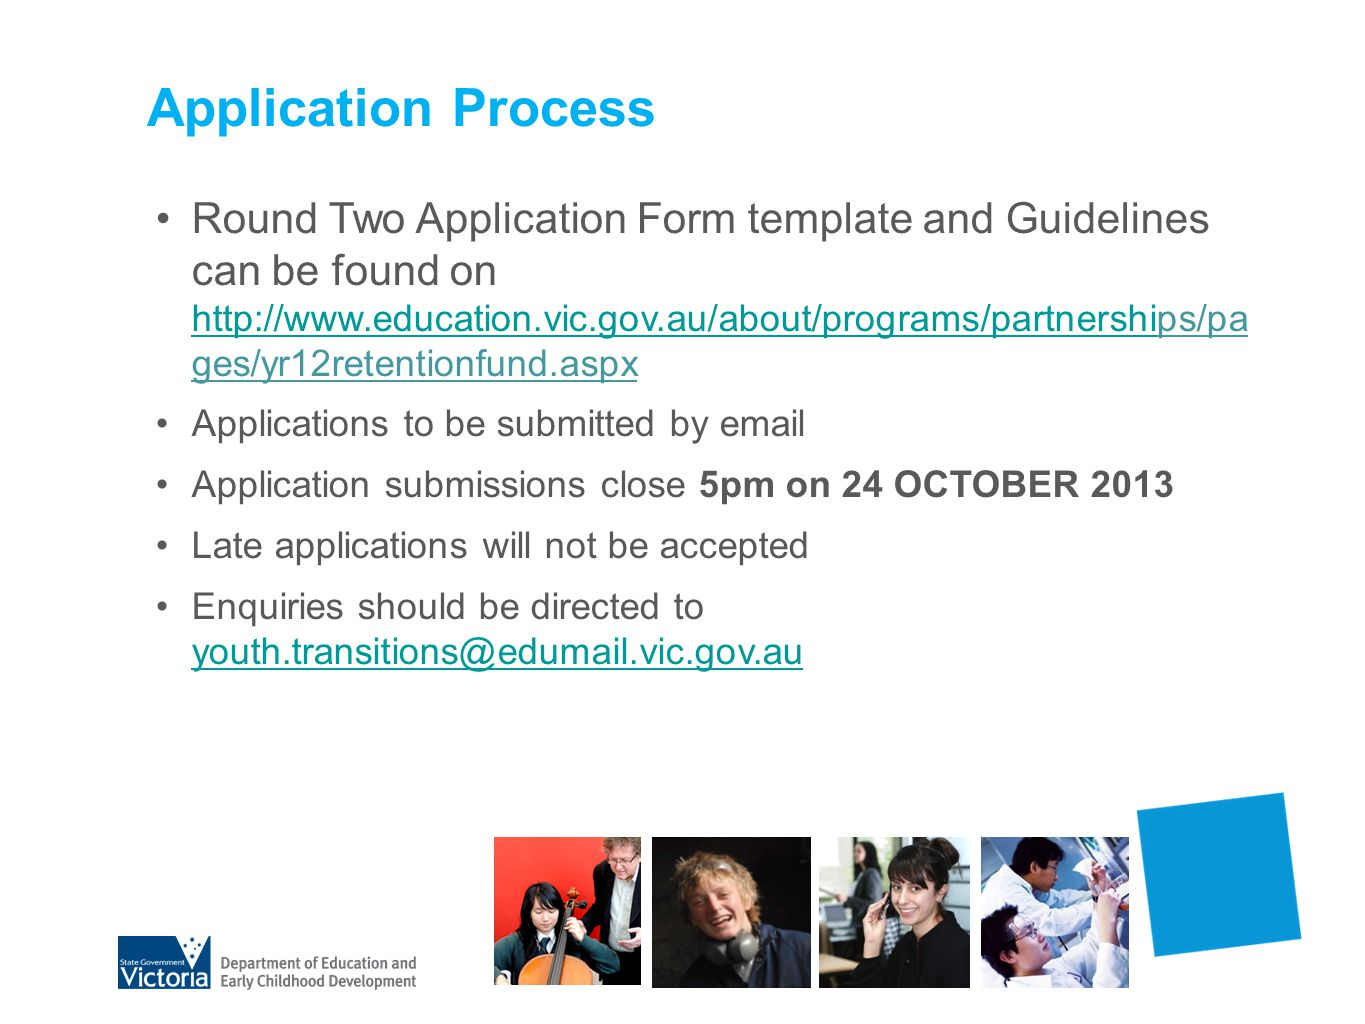 Application Process Round Two Application Form template and Guidelines can be found on   ges/yr12retentionfund.aspx   Applications to be submitted by  Application submissions close 5pm on 24 OCTOBER 2013 Late applications will not be accepted Enquiries should be directed to